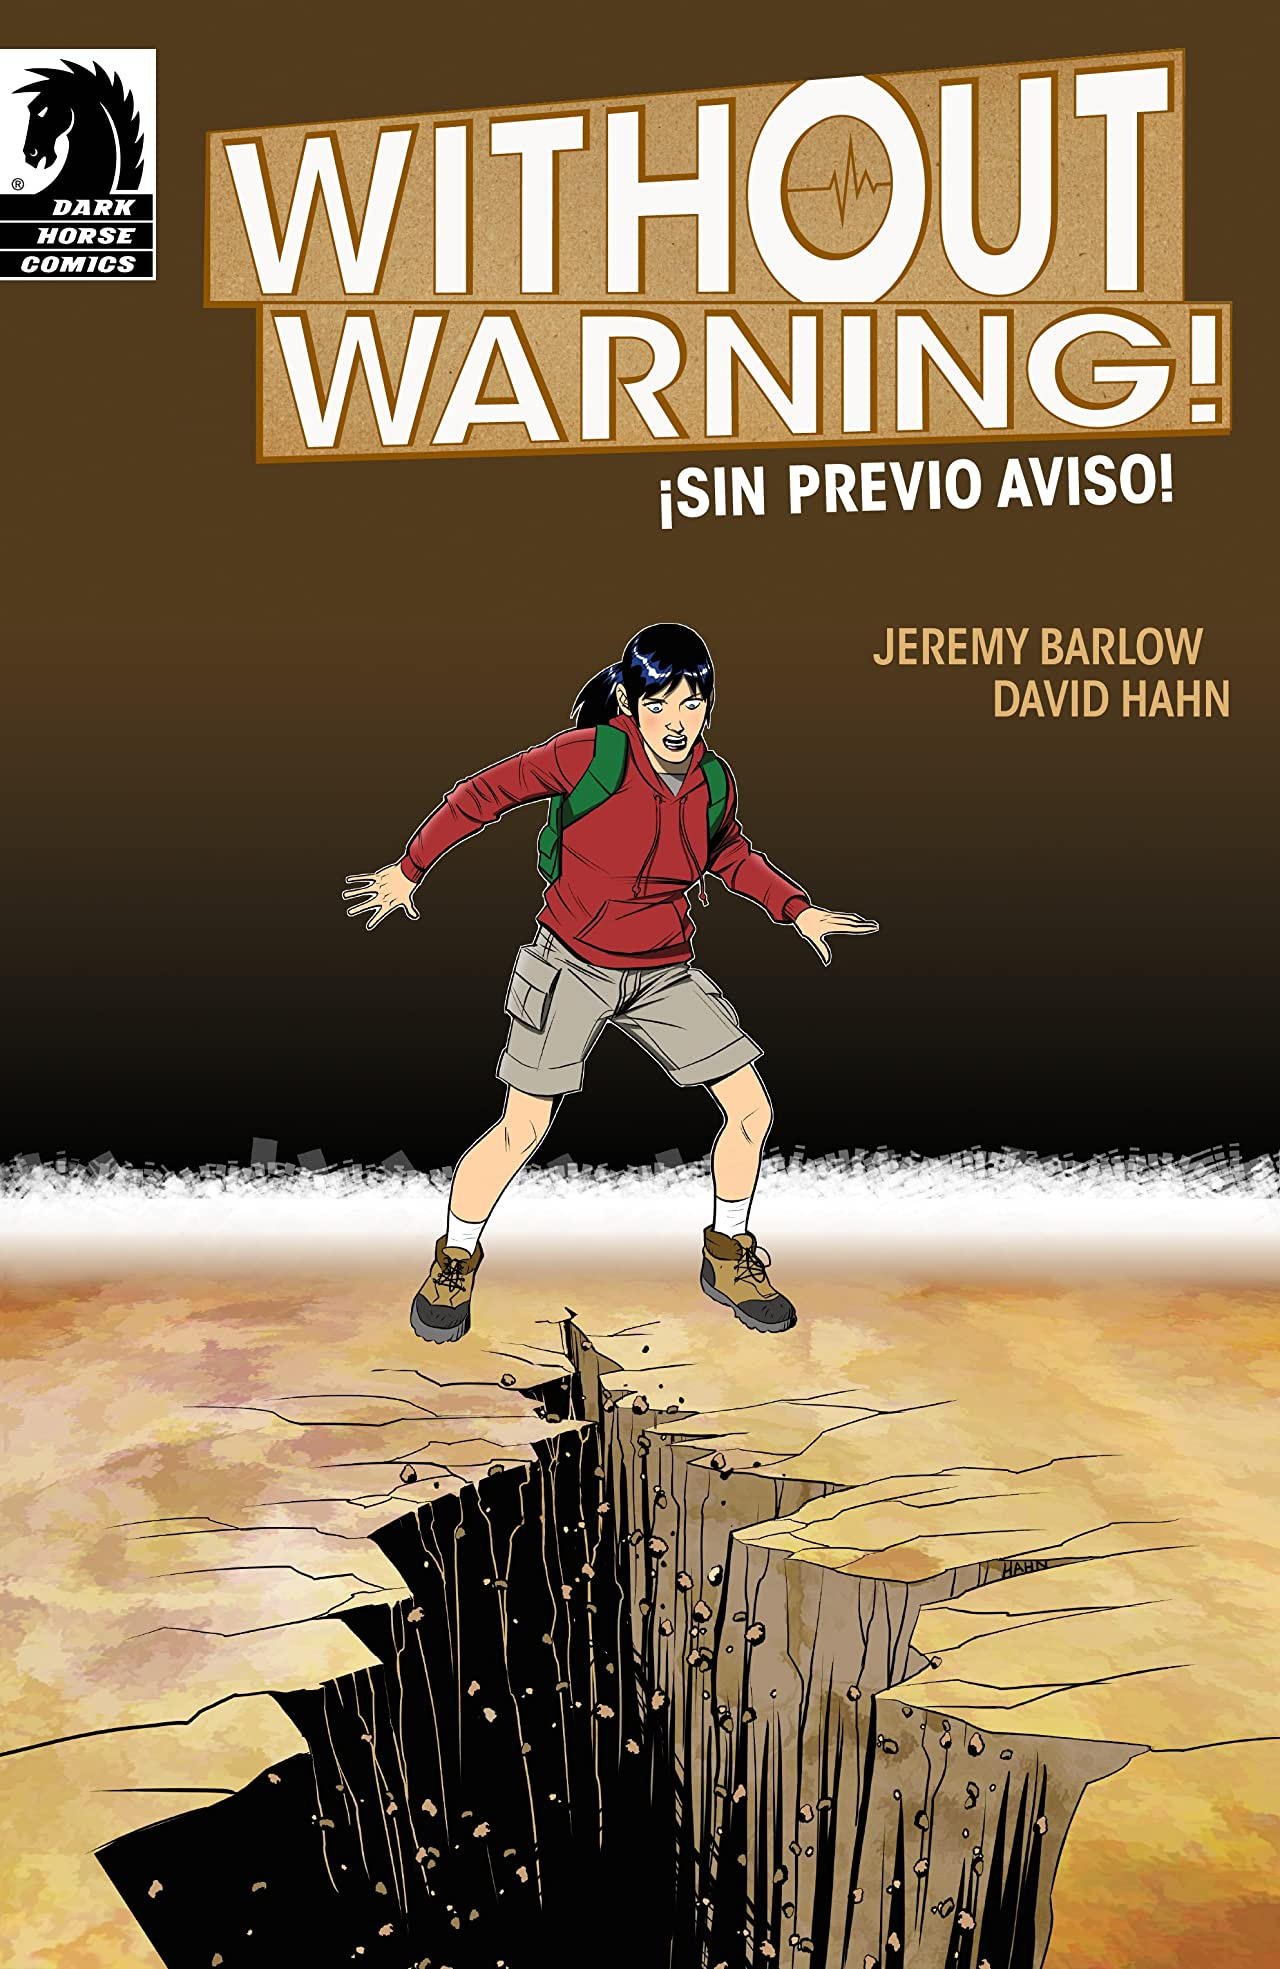 Without Warning! (Earthquake Safety and Information) (Spanish Edition)